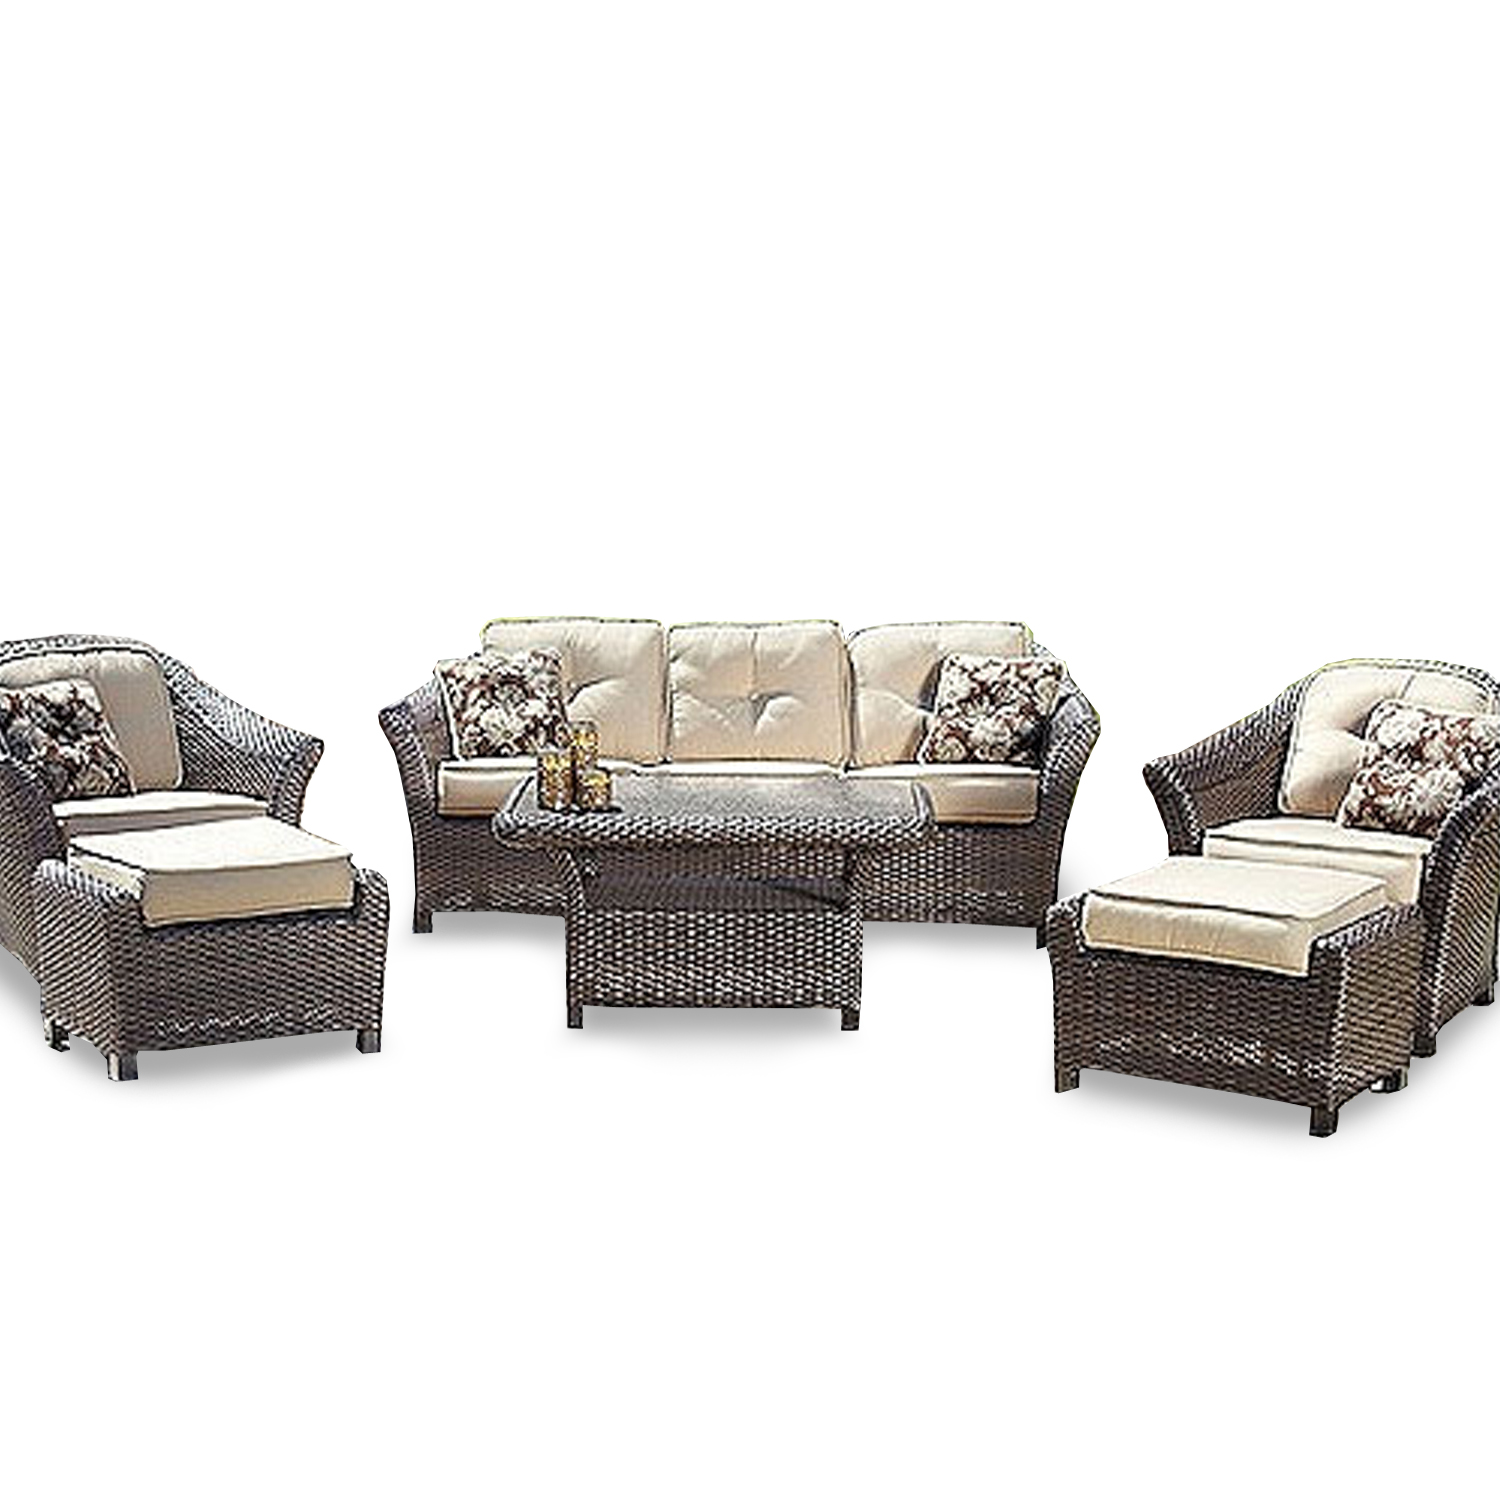 sam s club lawn chairs office depot mesh chair replacement cushions for sams patio sets garden winds